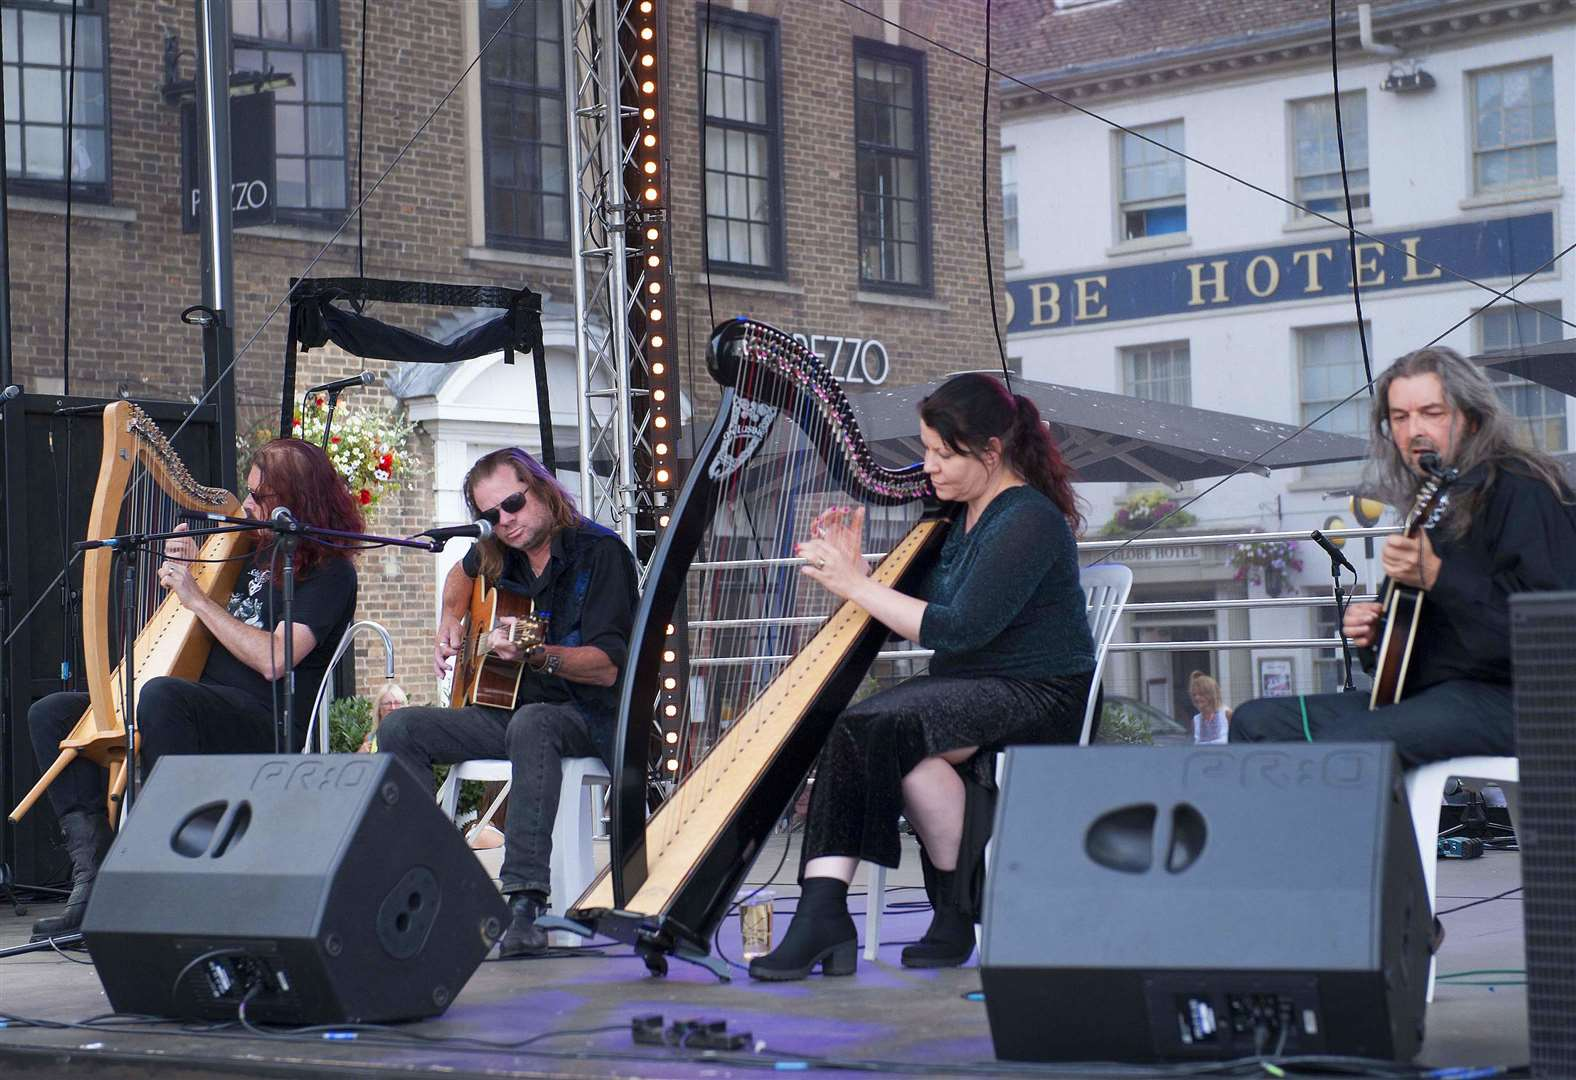 Music-lovers flock to The Folk in the Town in King's Lynn